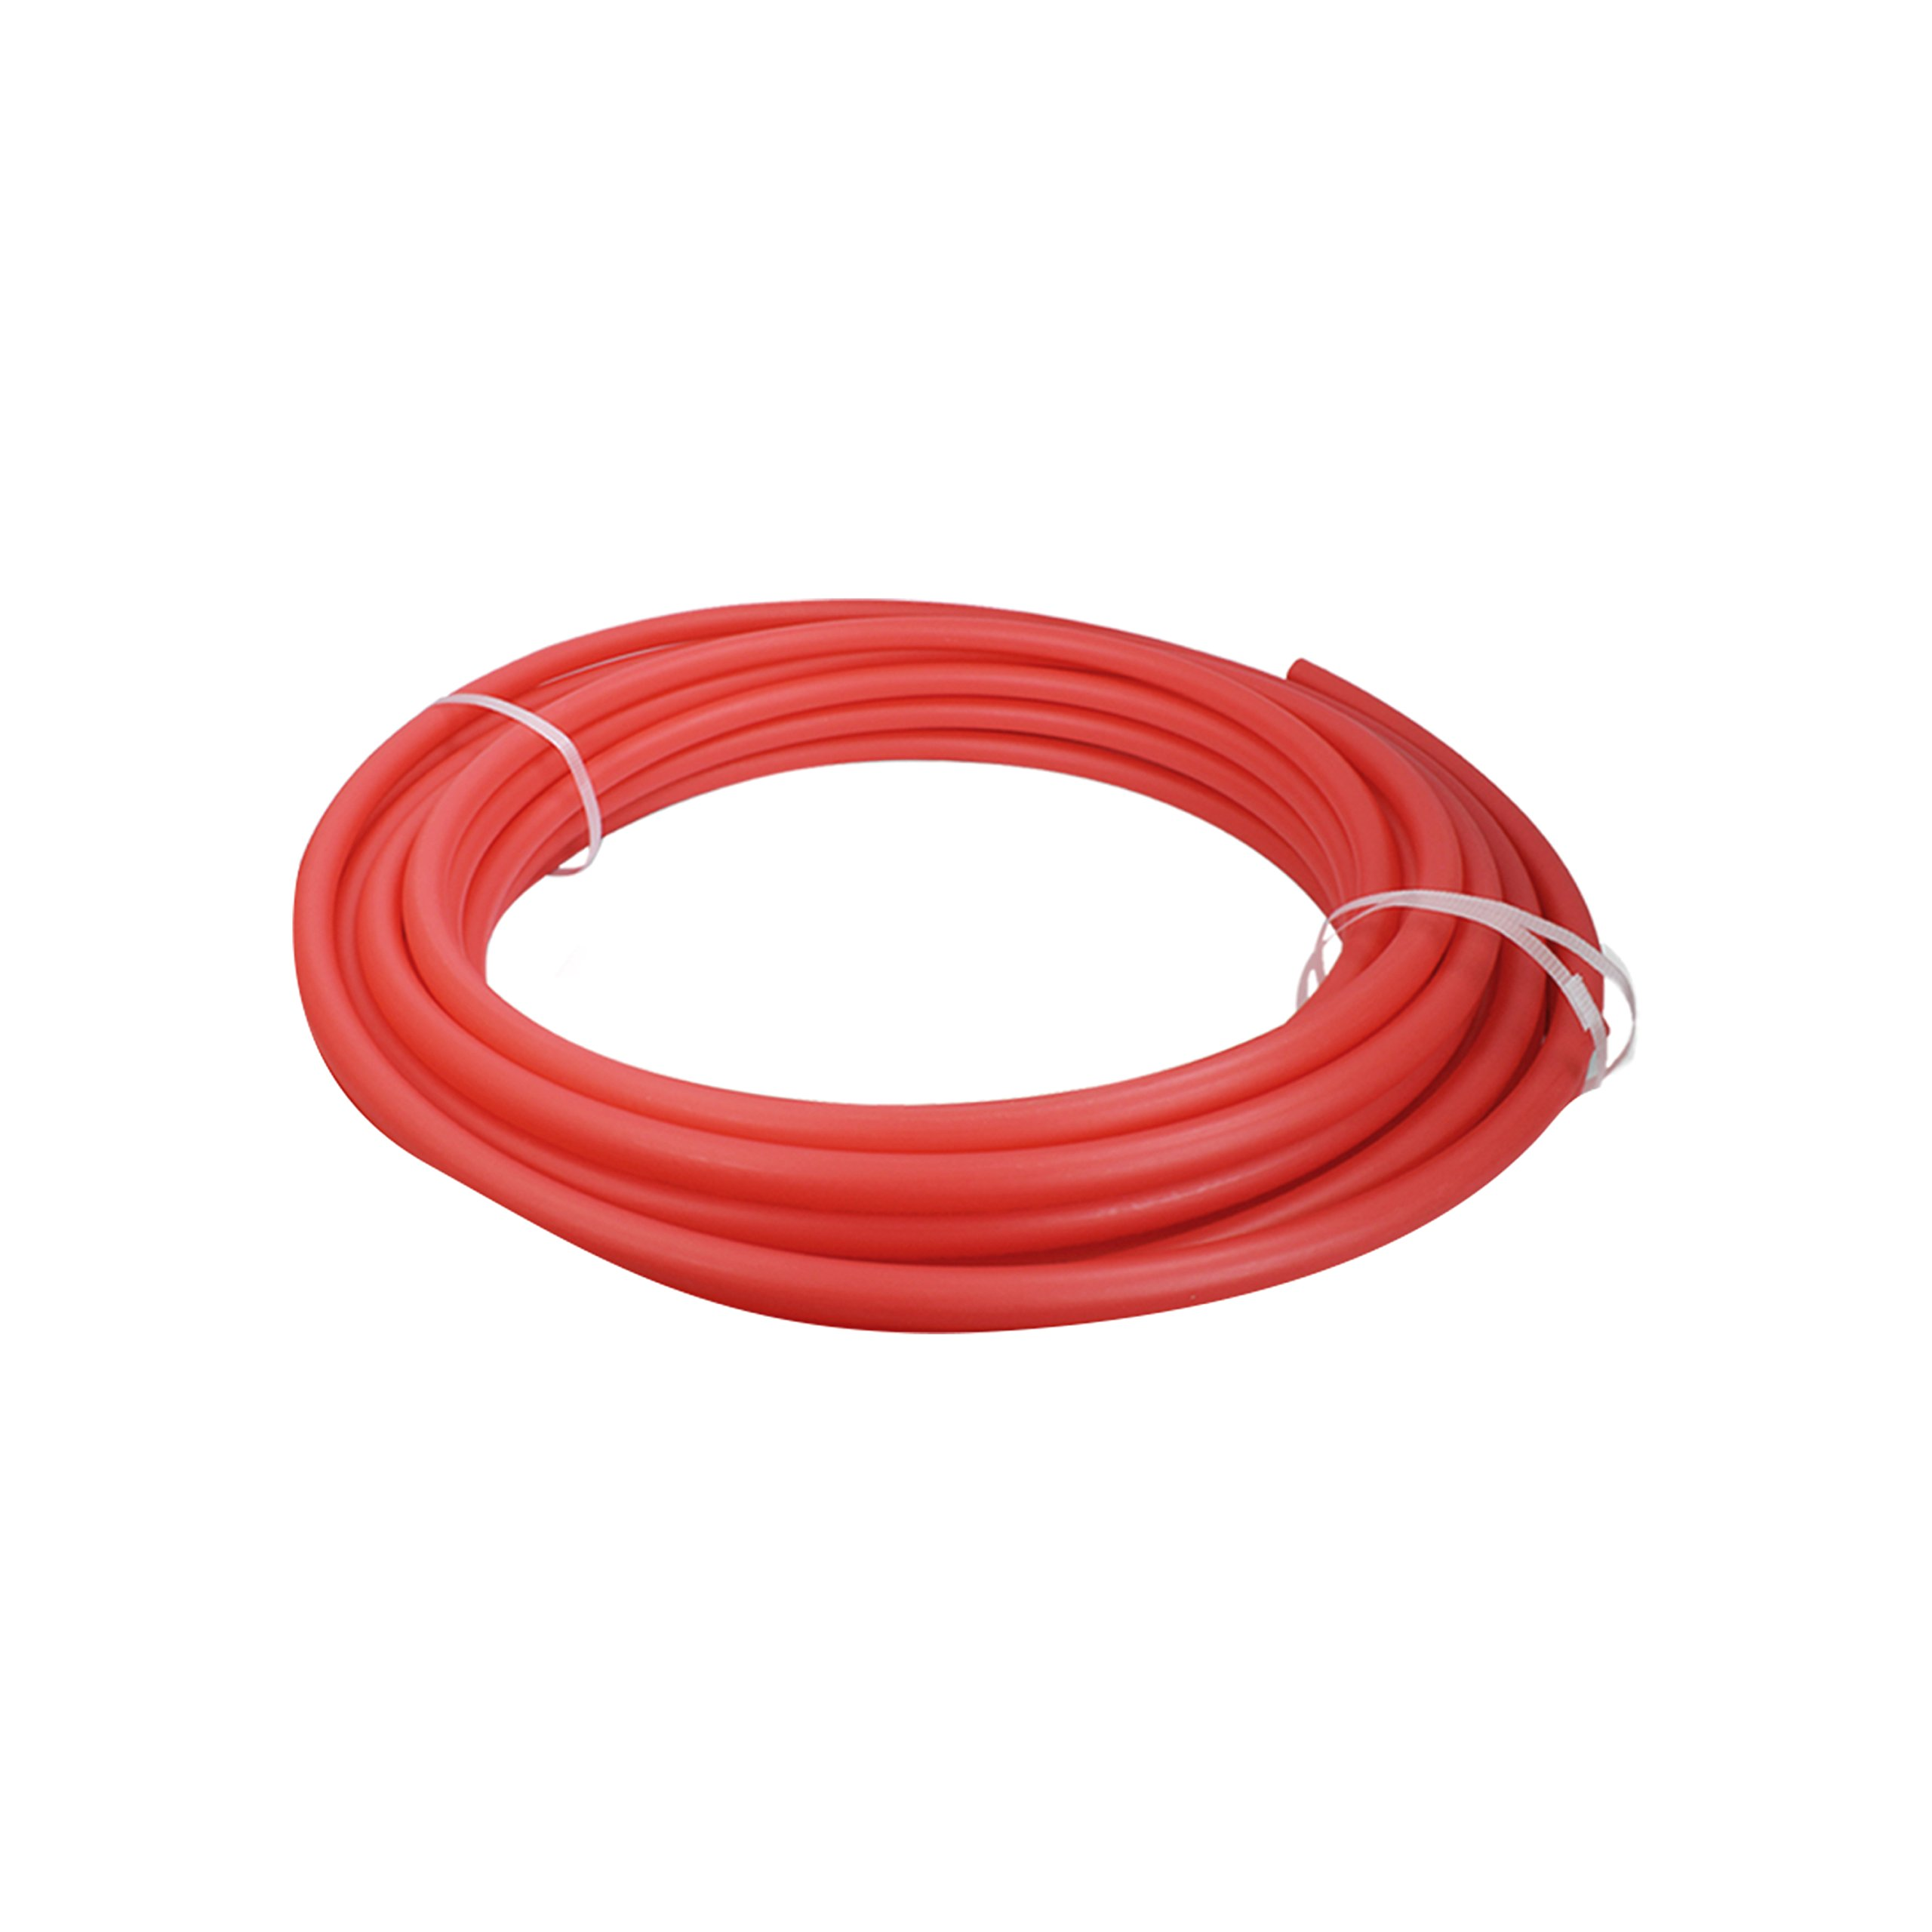 Pexflow PFR-R58100 Oxygen Barrier PEX Tubing for Hydronic Radiant Floor Heating Systems, 5/8 Inch x 100 Feet, Red